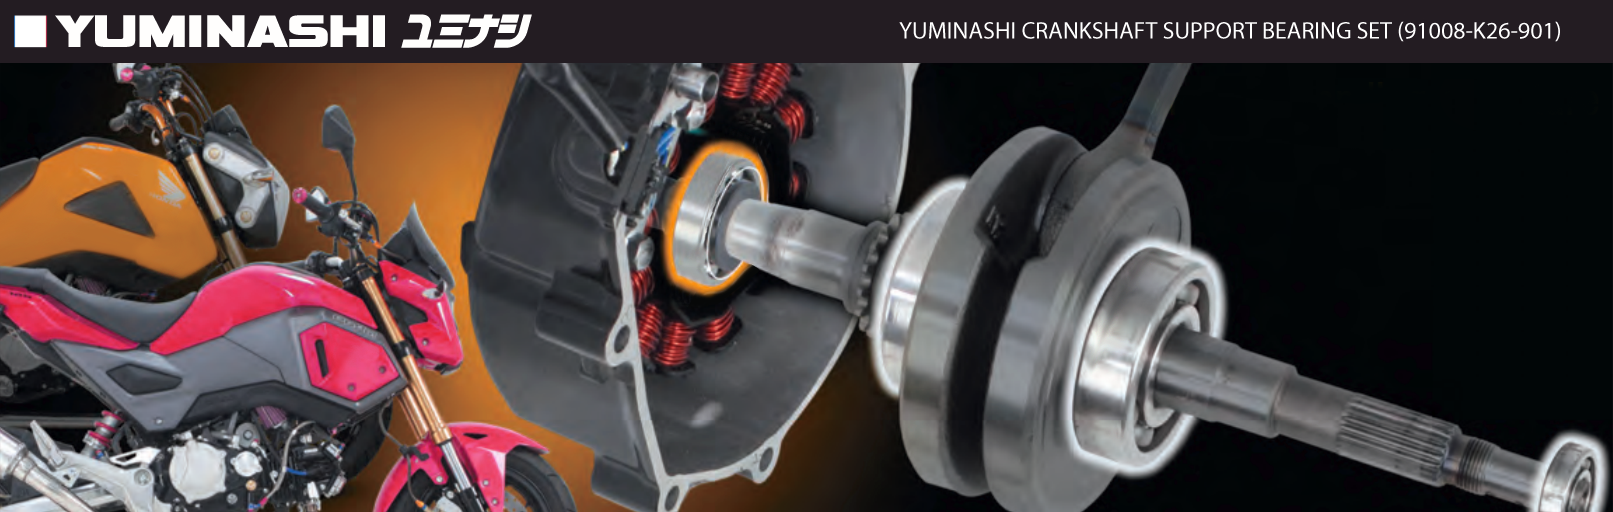 91008-k26-901-yuminashi-crankshaft-support-bearing-set-msx-grom125-p02.png